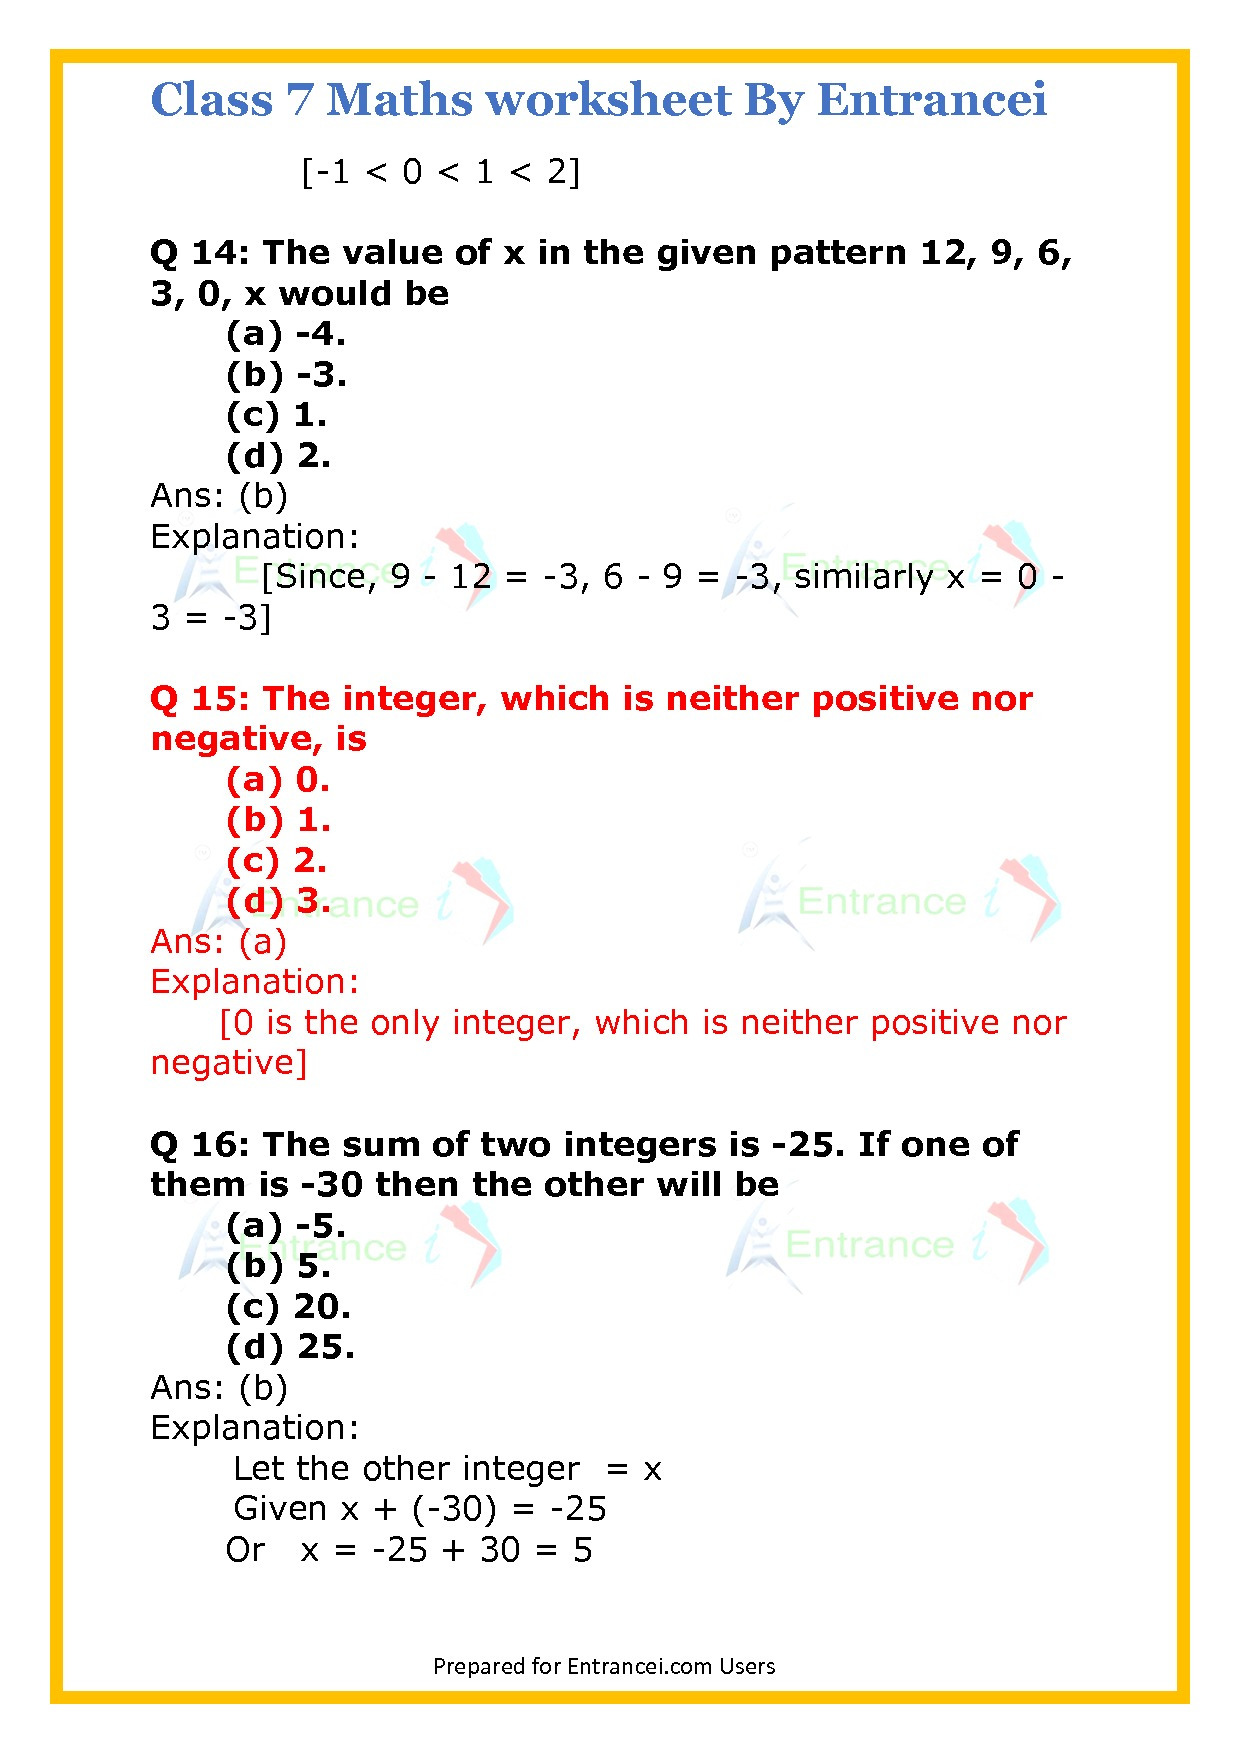 Cbse Class 7 Maths Worksheet For Chapter 1 Integers